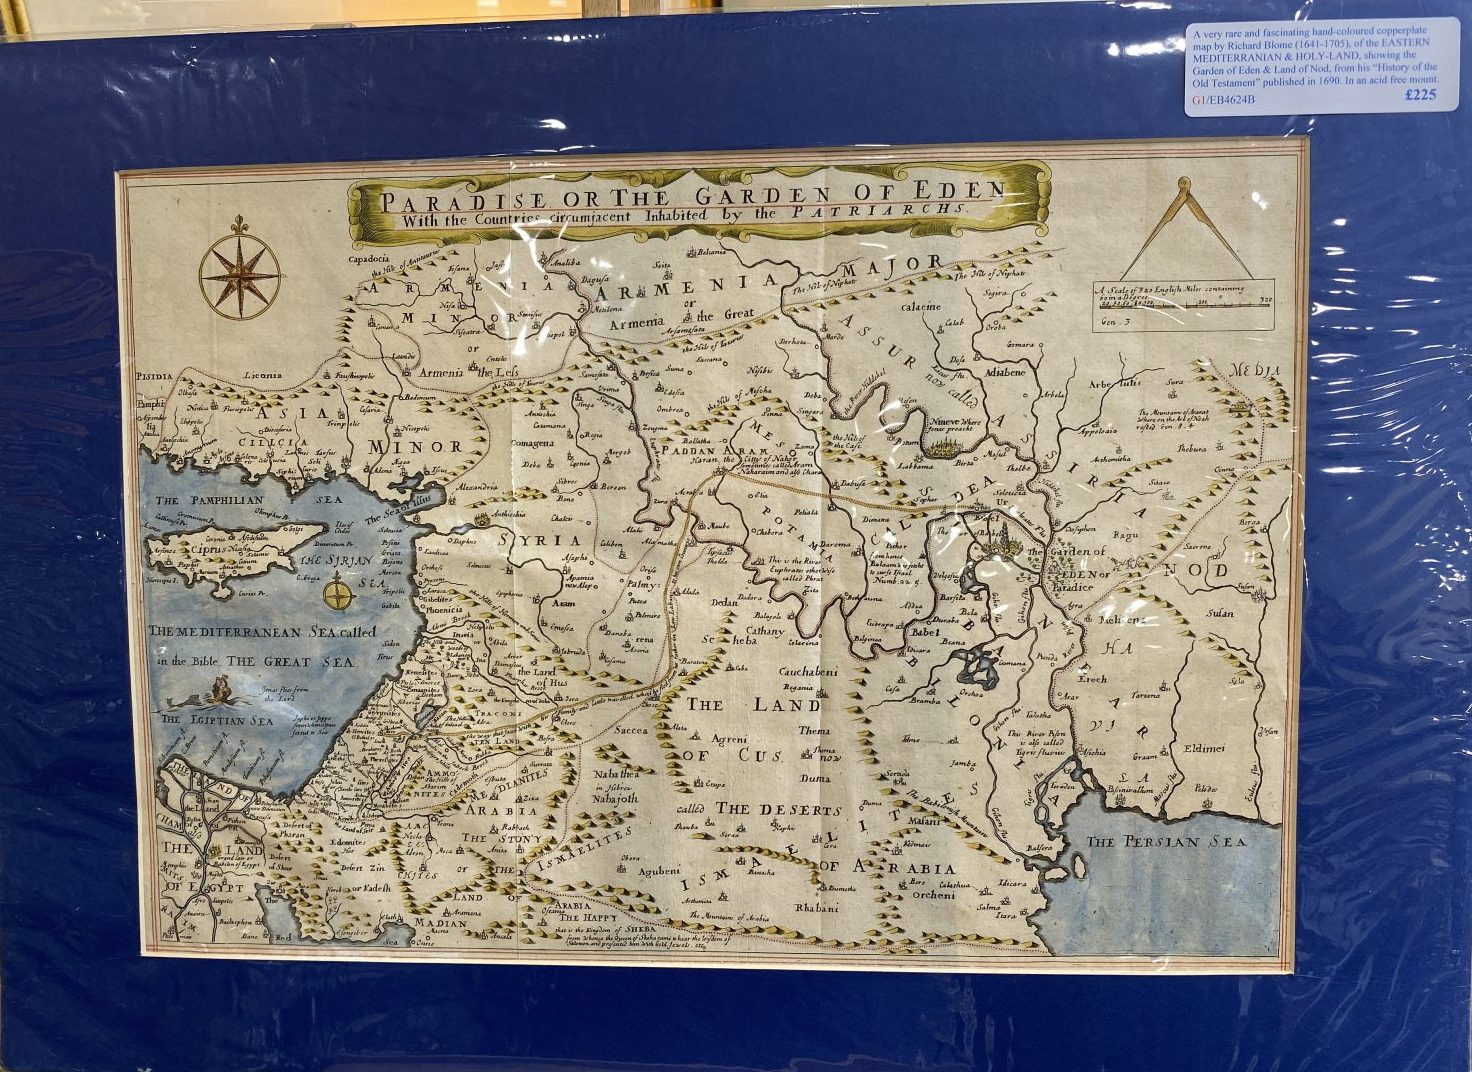 G1 - A very rare and fascinating hand-coloured copperplate map of the EASTERN MEDITERRANIAN & HOLY-LAND showing the Garden of Eden and Land of Nod, by Richard Blome (1641-1705).  From his History of the Old Testament published in 1690. In an acid free mount ready for framing.  £225